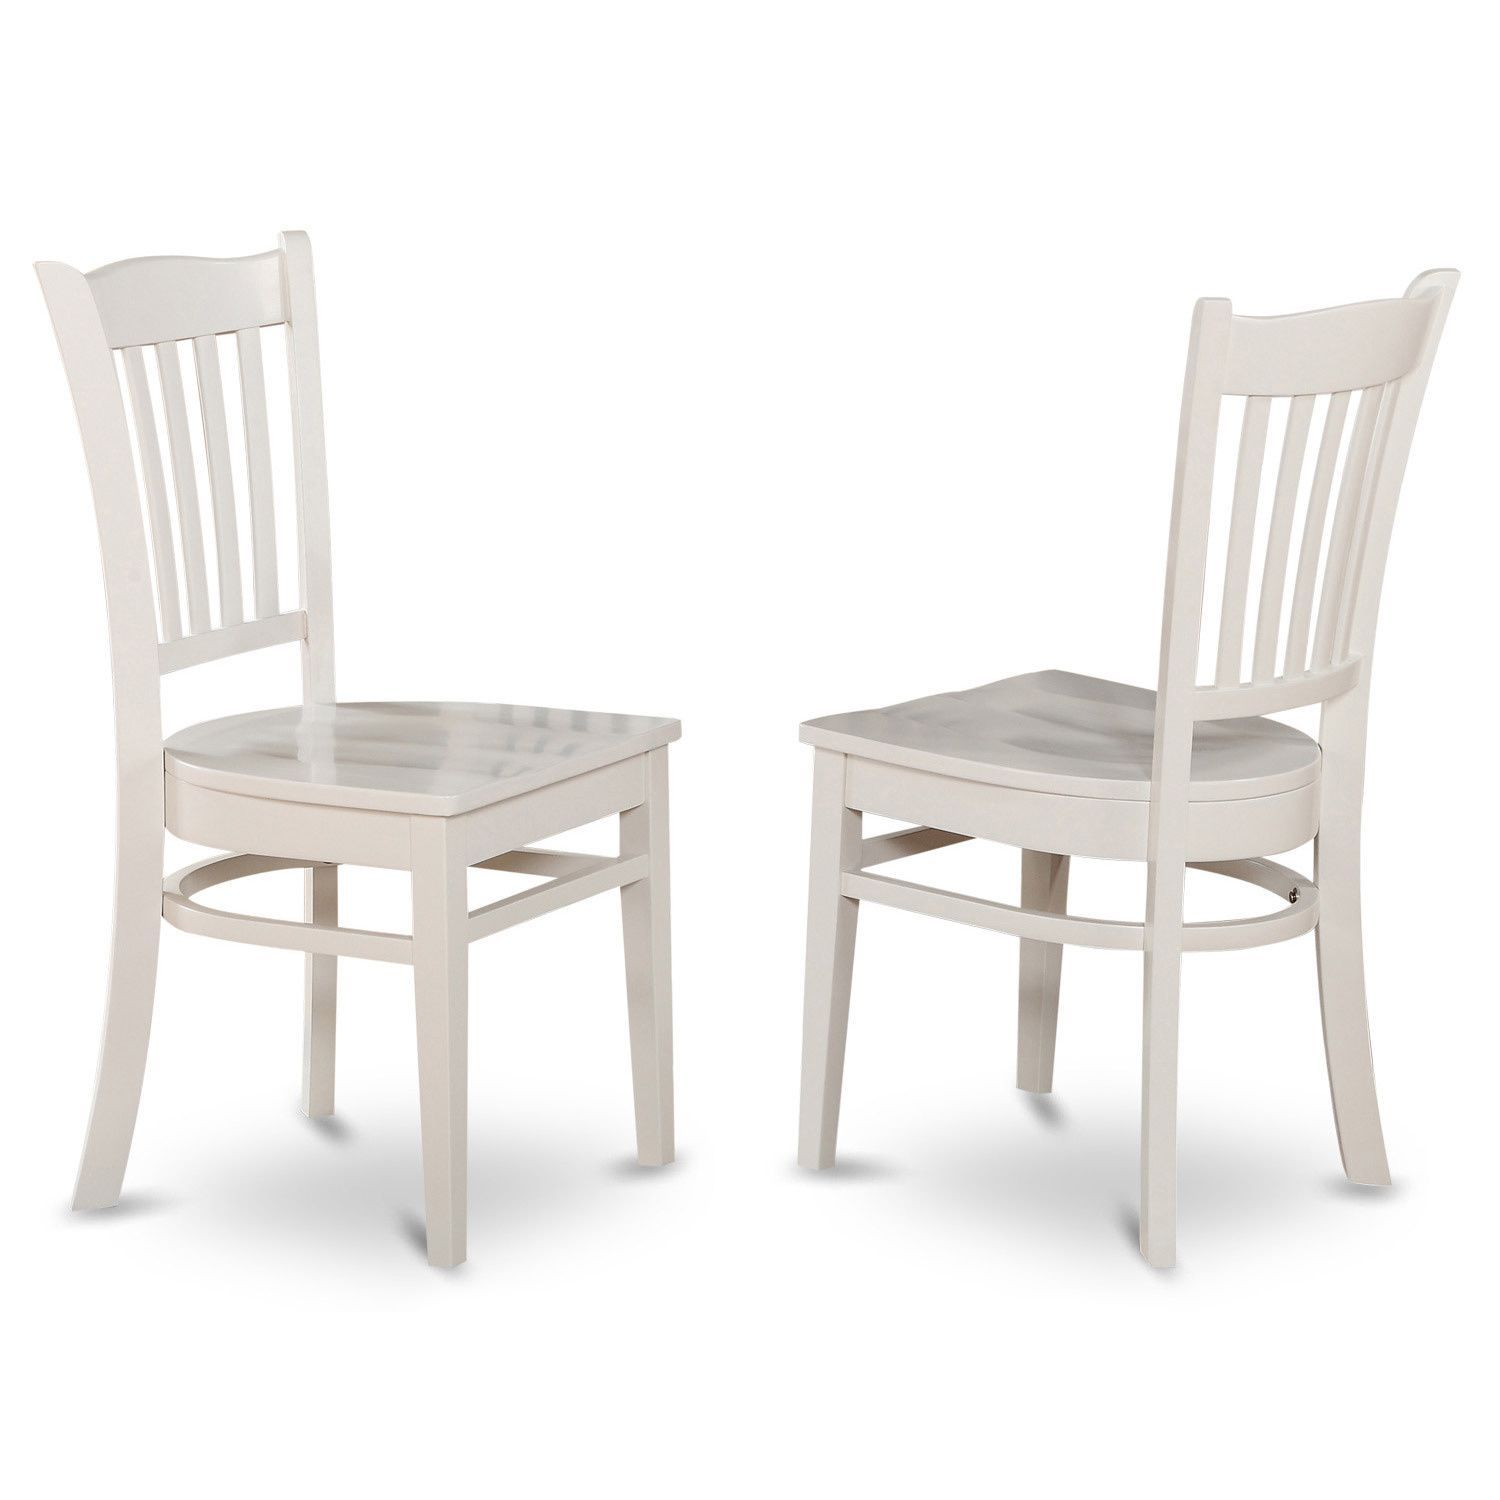 Groton wooden seat dining chair linen white rubberwood white wood dining chairs